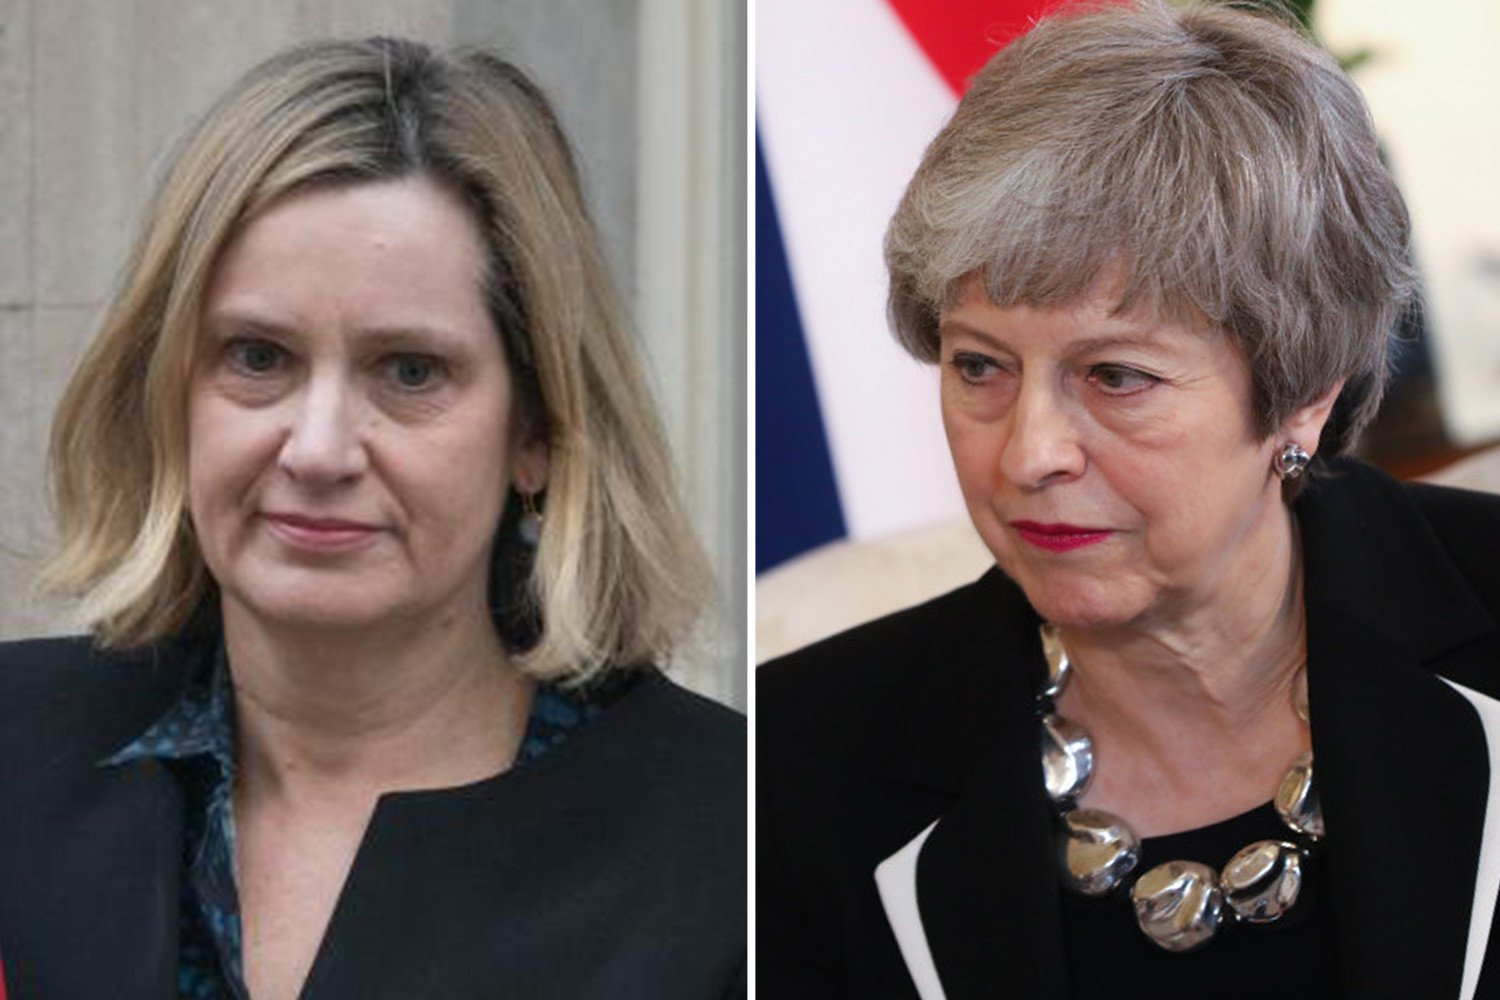 Dithering Remainer MPs must unite over Brexit for the sake of our country – anything else is a shameful betrayal